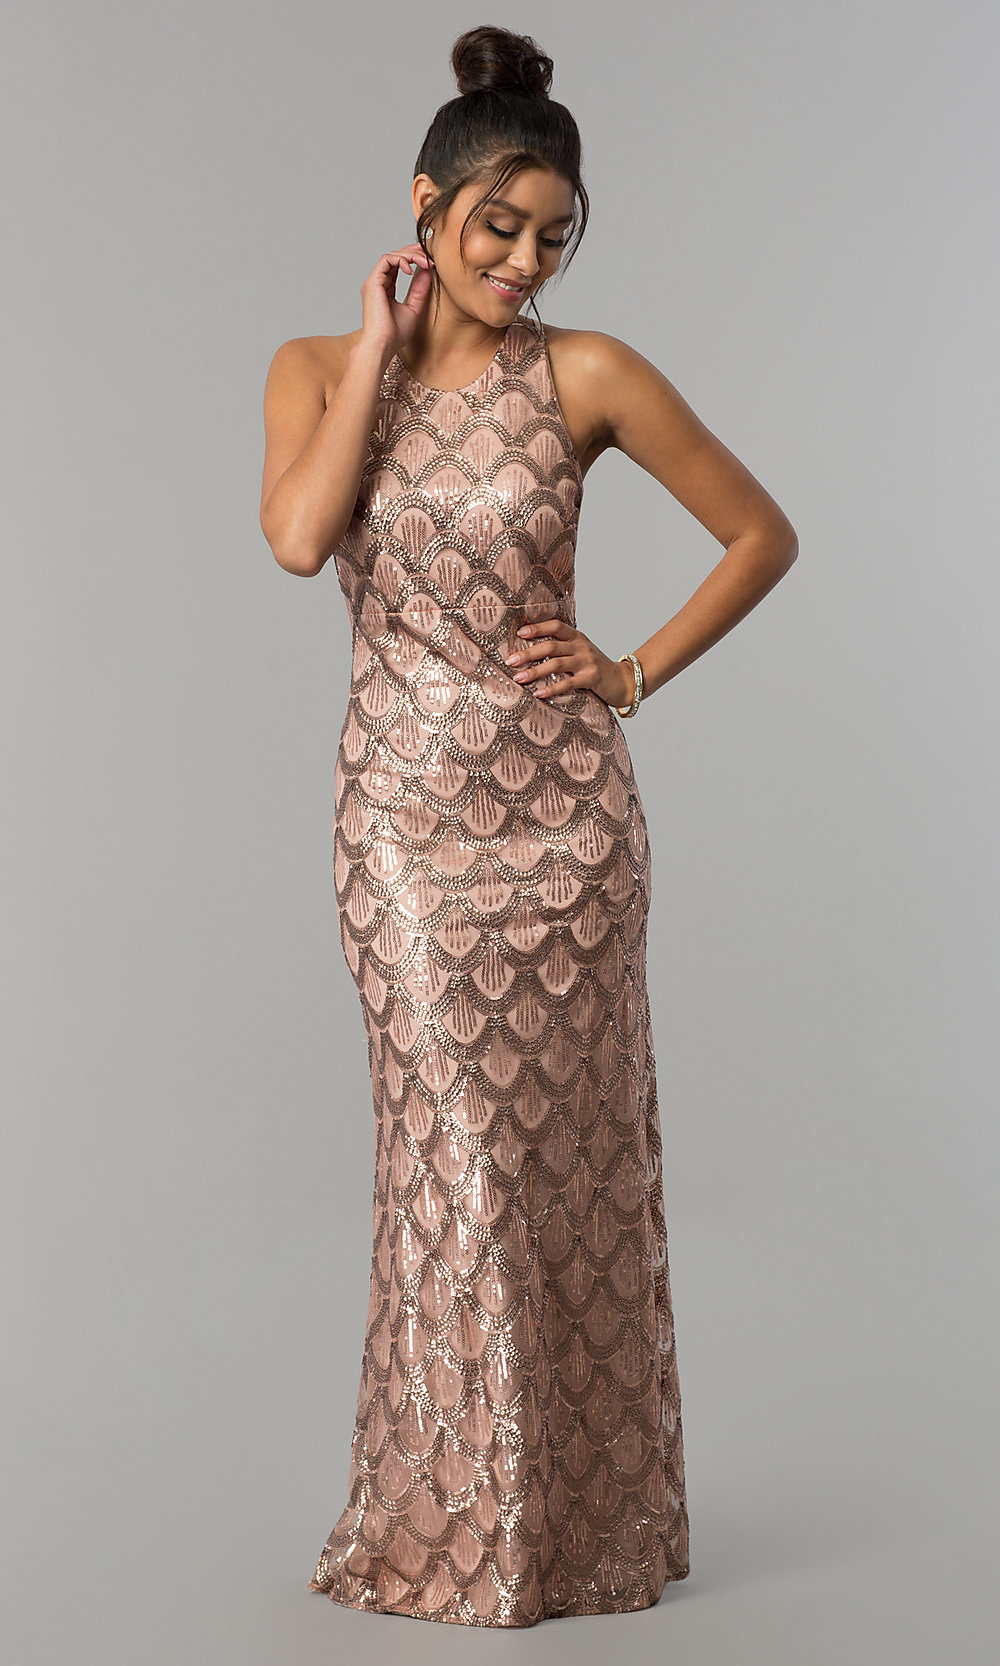 Rose Gold Sequin Print Long Prom Dress Promgirl